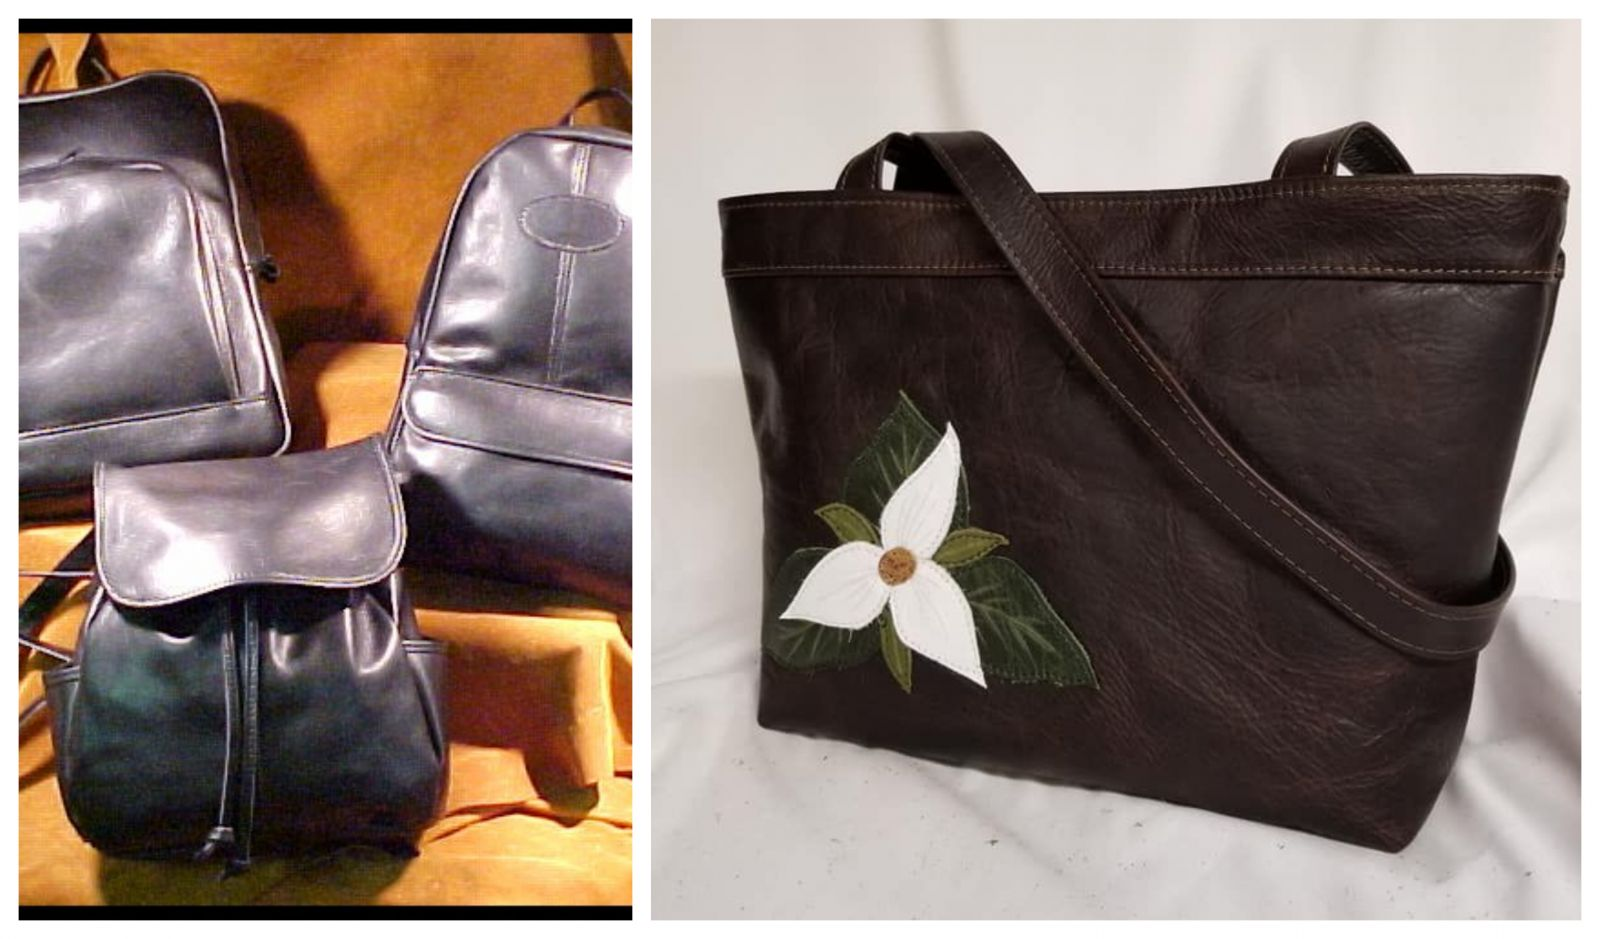 Beautiful leather goods from the Leather Artisan.